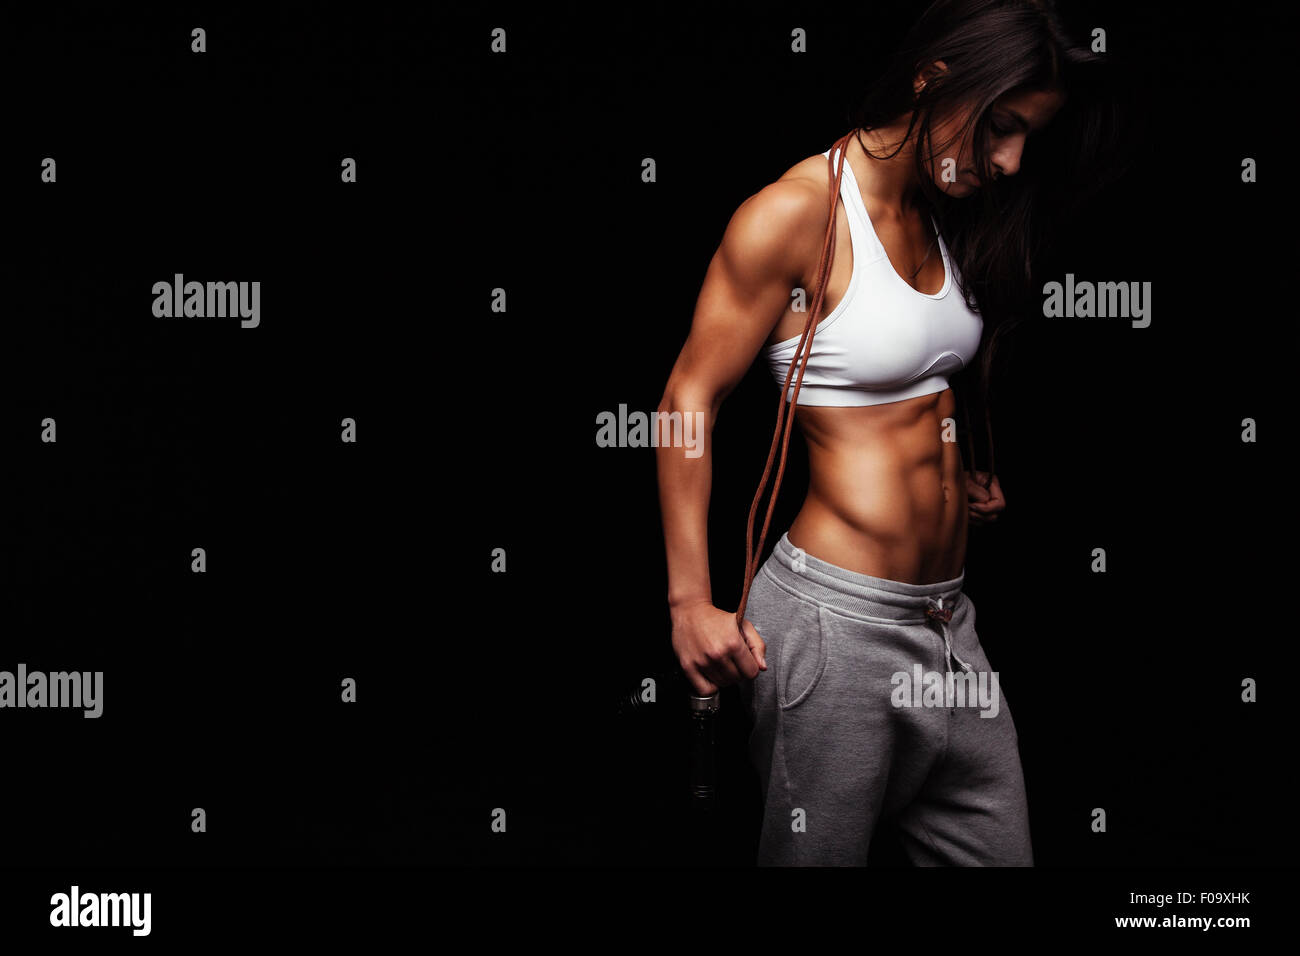 Image of female bodybuilder holding skipping rope looking down. Young fitness woman with muscular body posing on - Stock Image